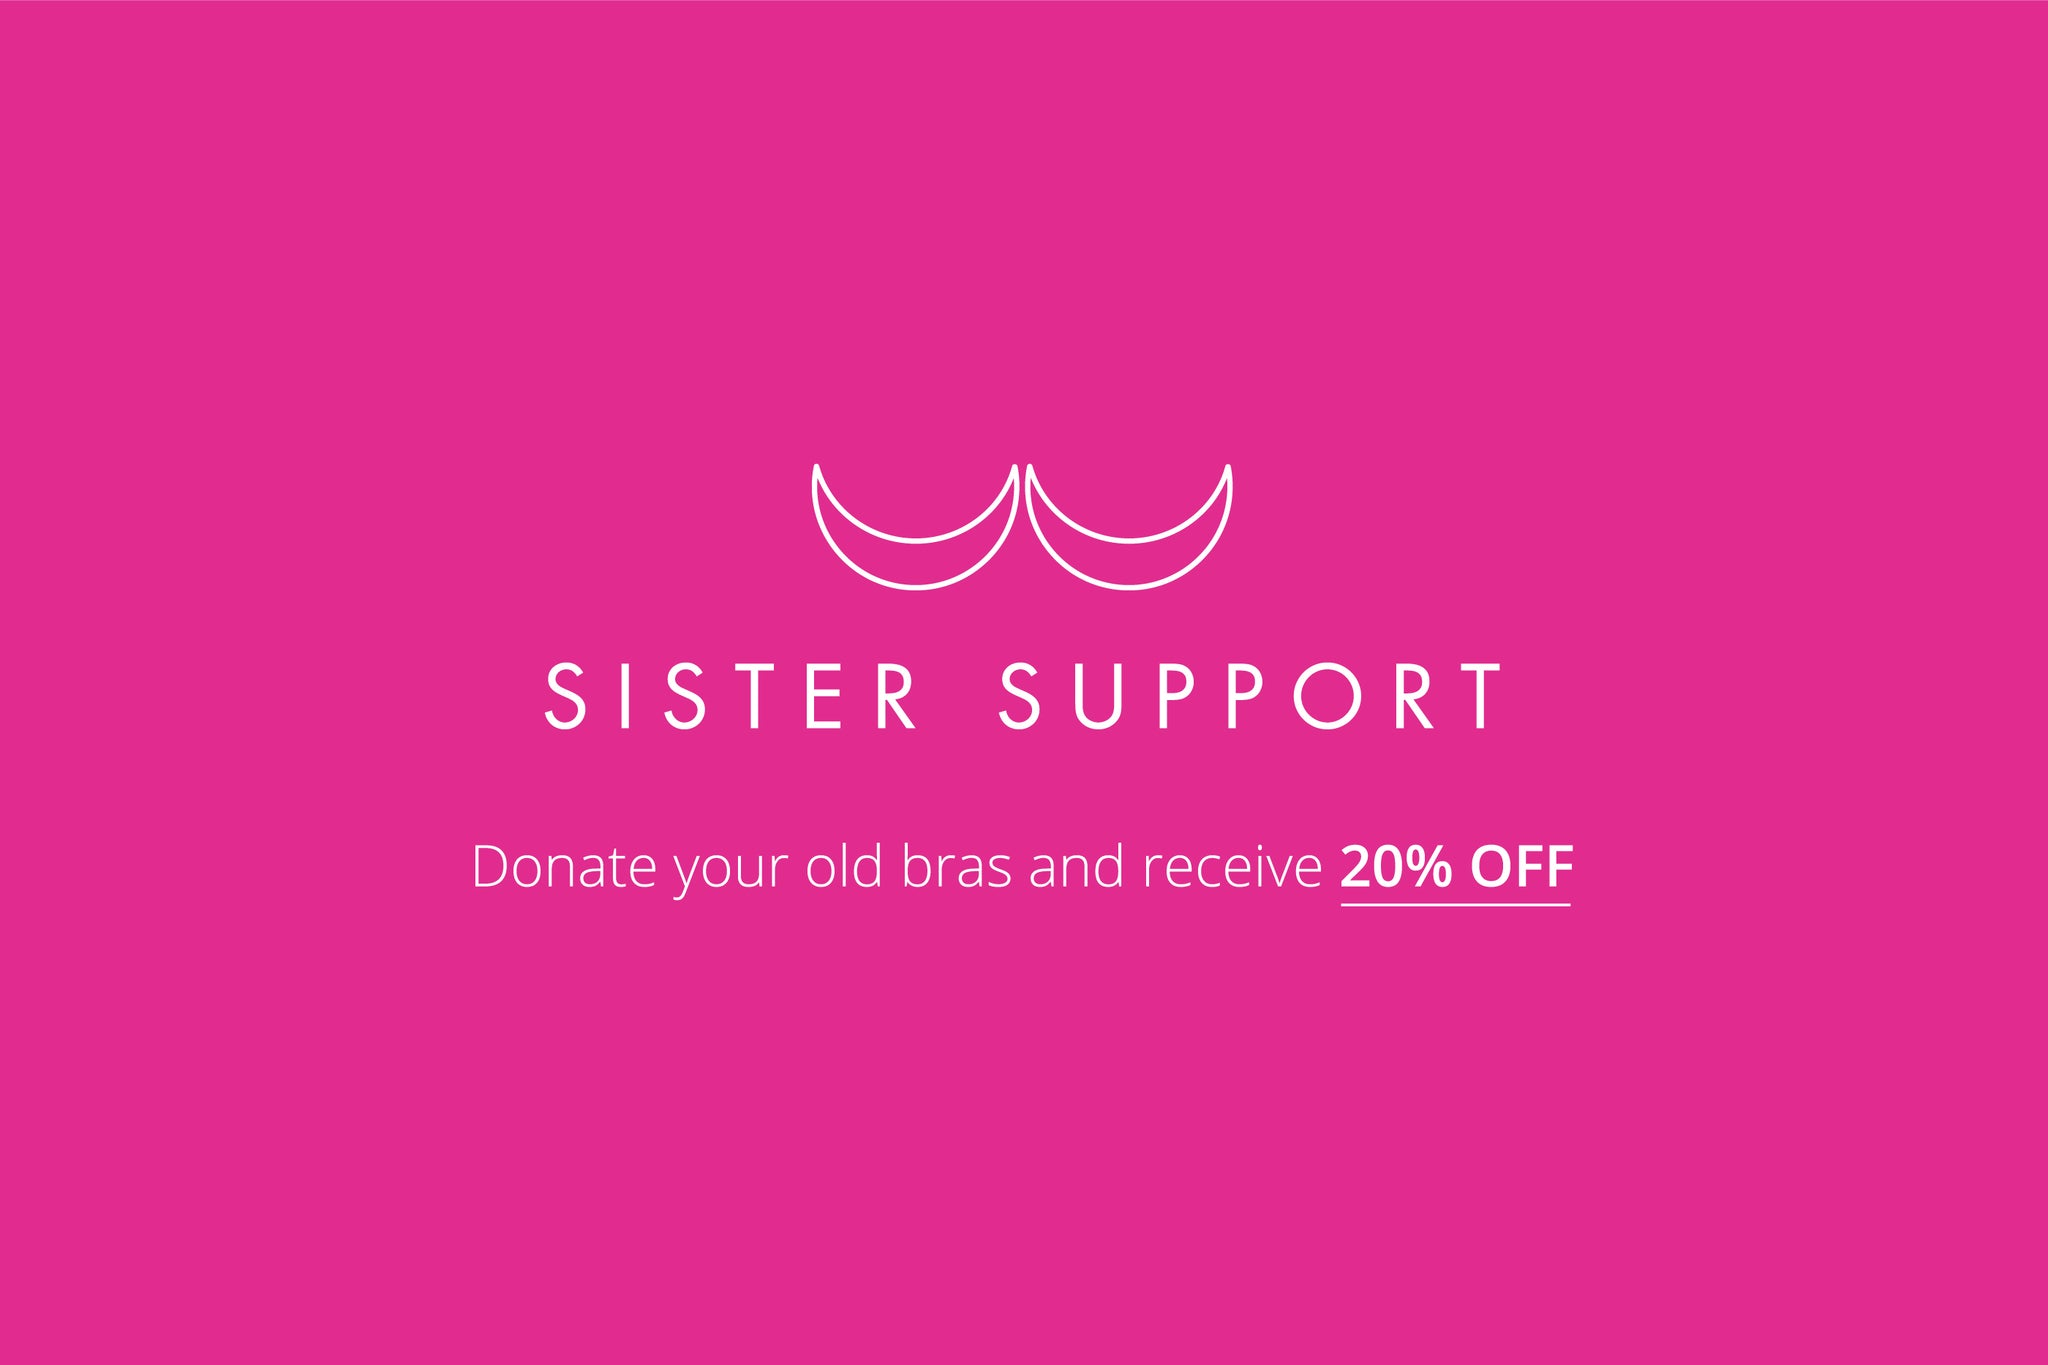 Sister Support